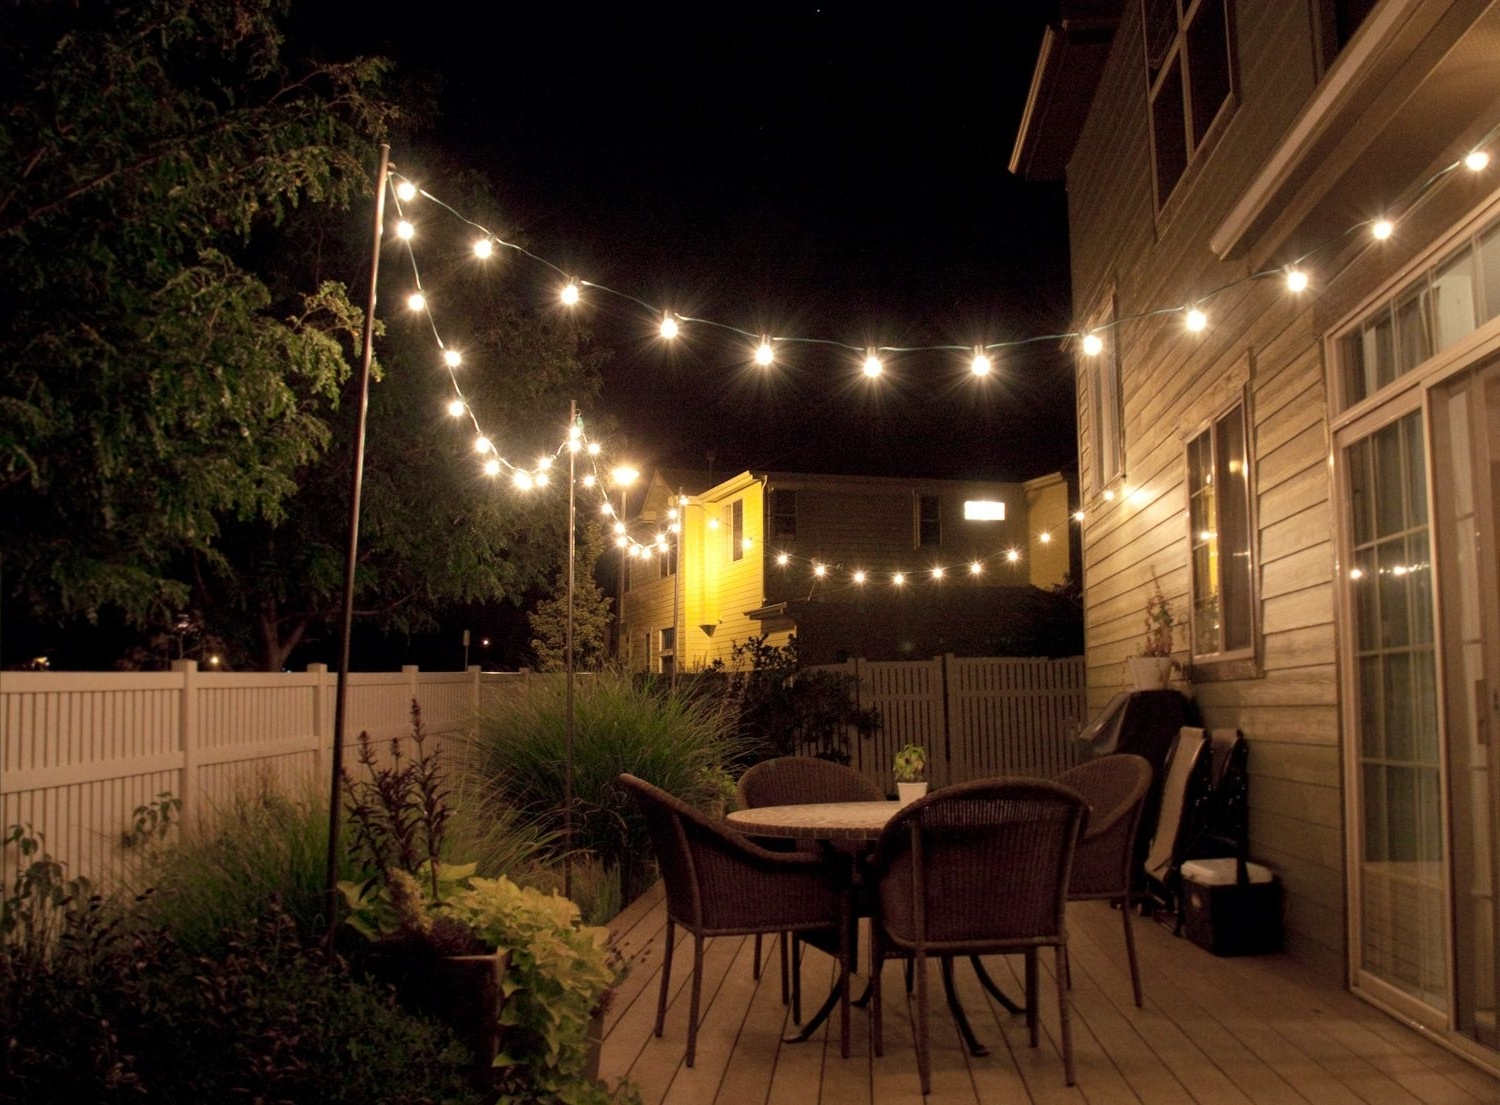 Commercial Outdoor Hanging Lights Within Popular How To Make Inexpensive Poles To Hang String Lights On – Café Style (Gallery 9 of 20)